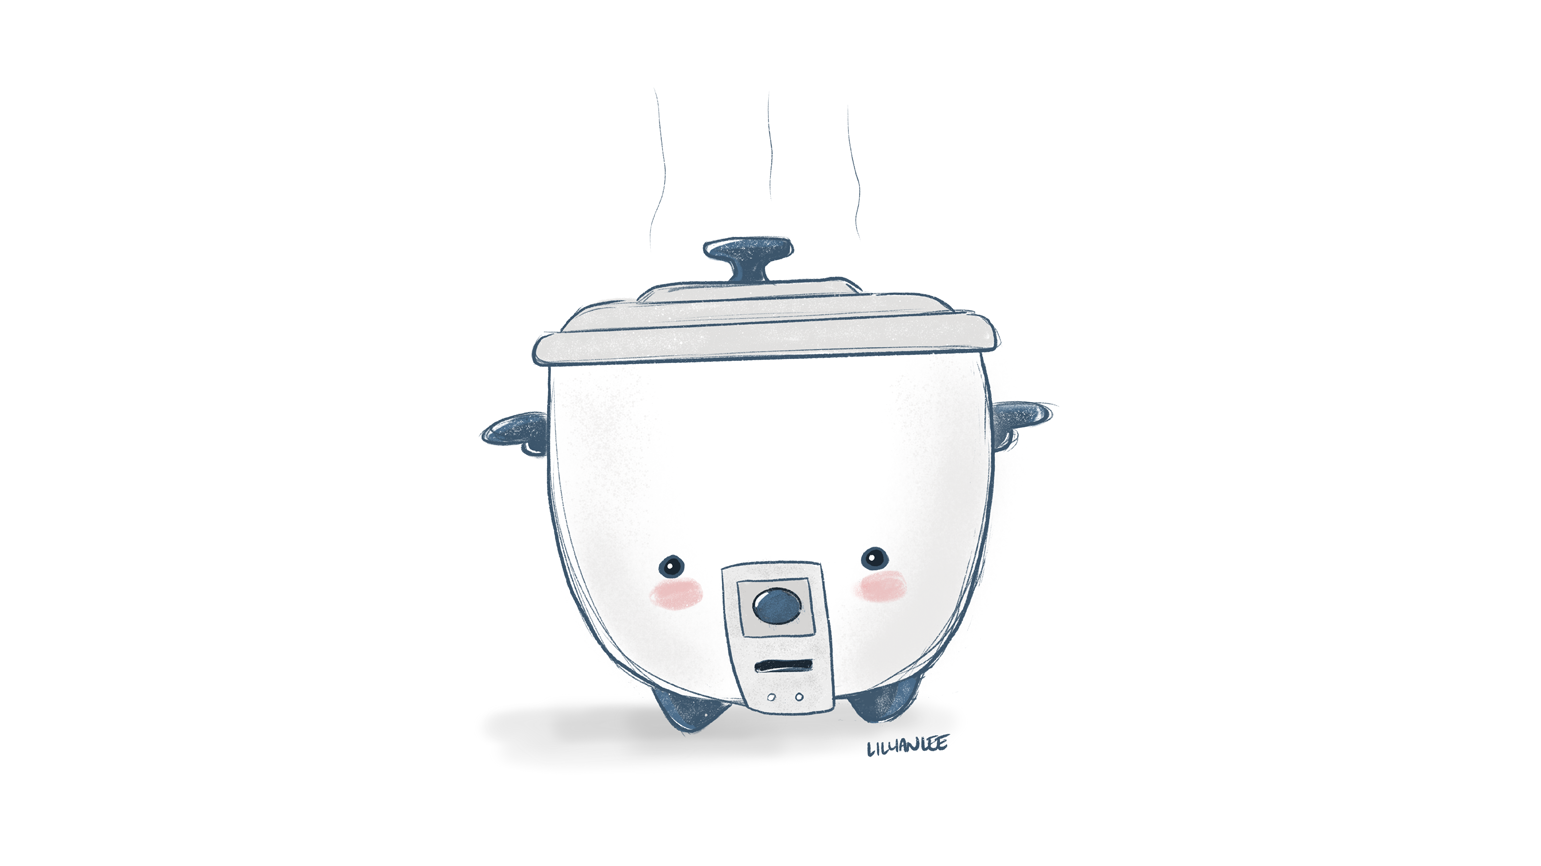 A Kawaii Rice Cooker Illustration by Empty Bamboo Girl / Lillian Lee